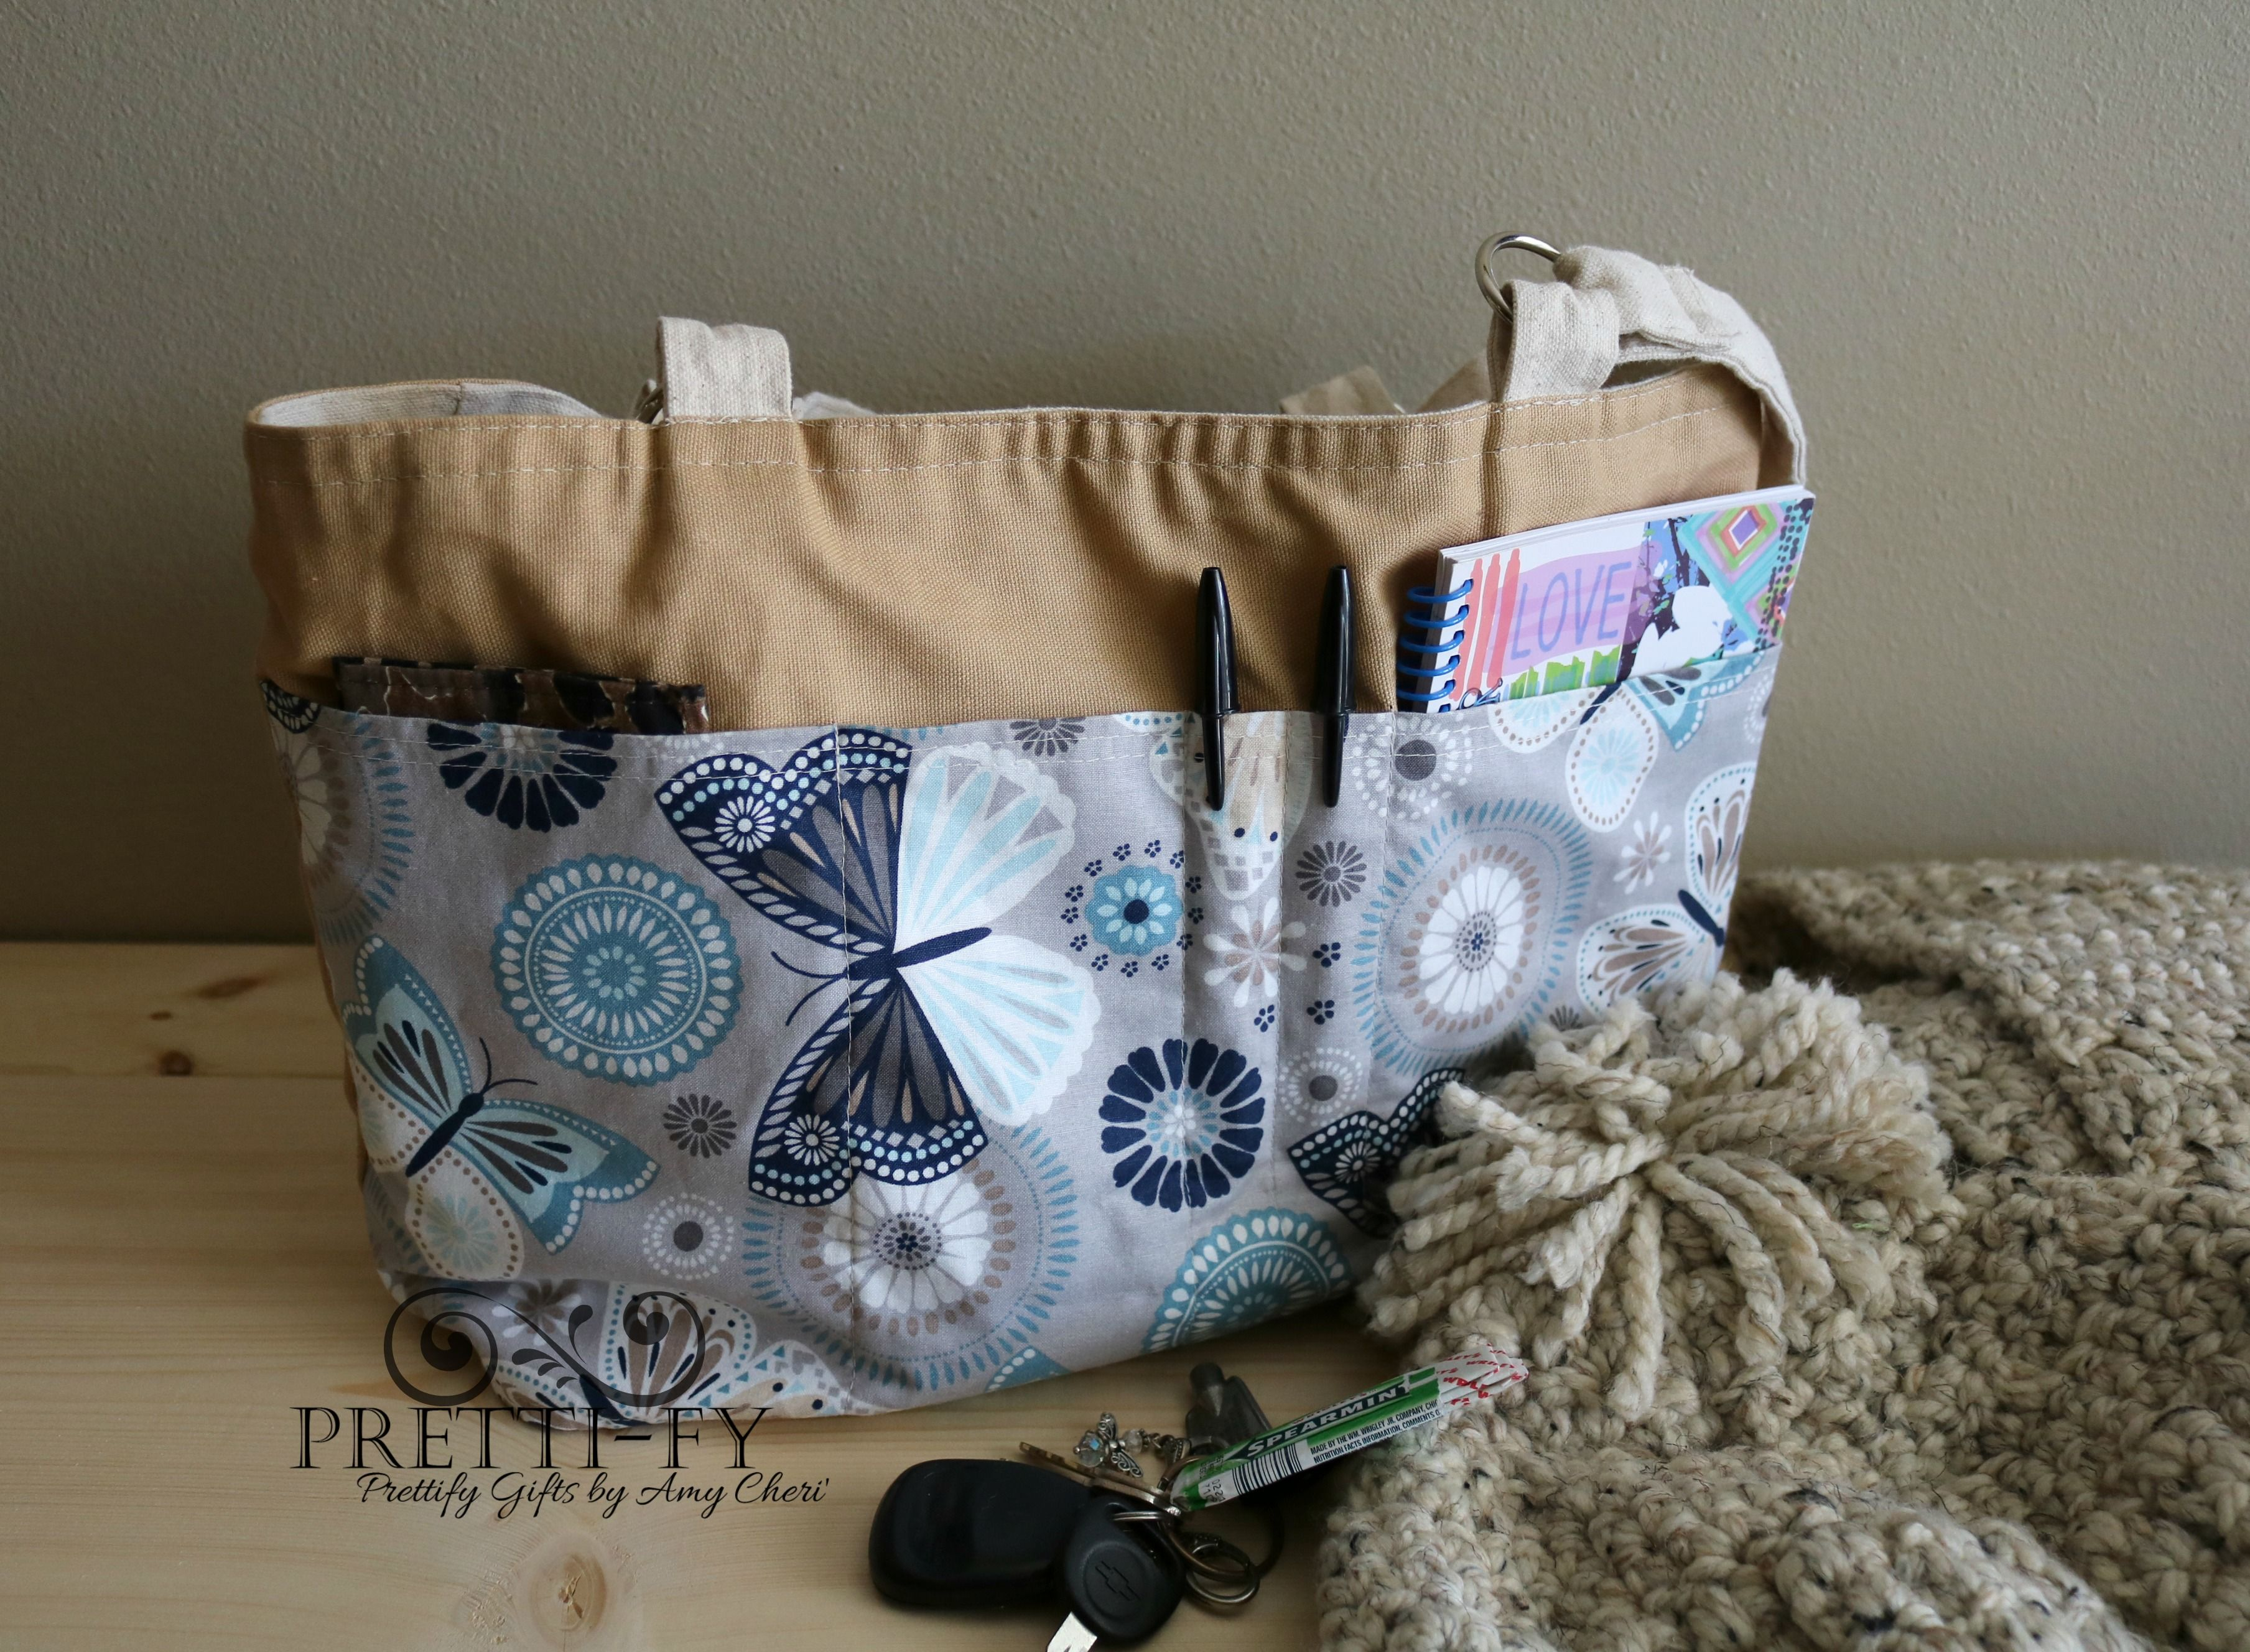 New Organizer Tote Bag Keeps Purse Chaos Under Control! [Design Launch]